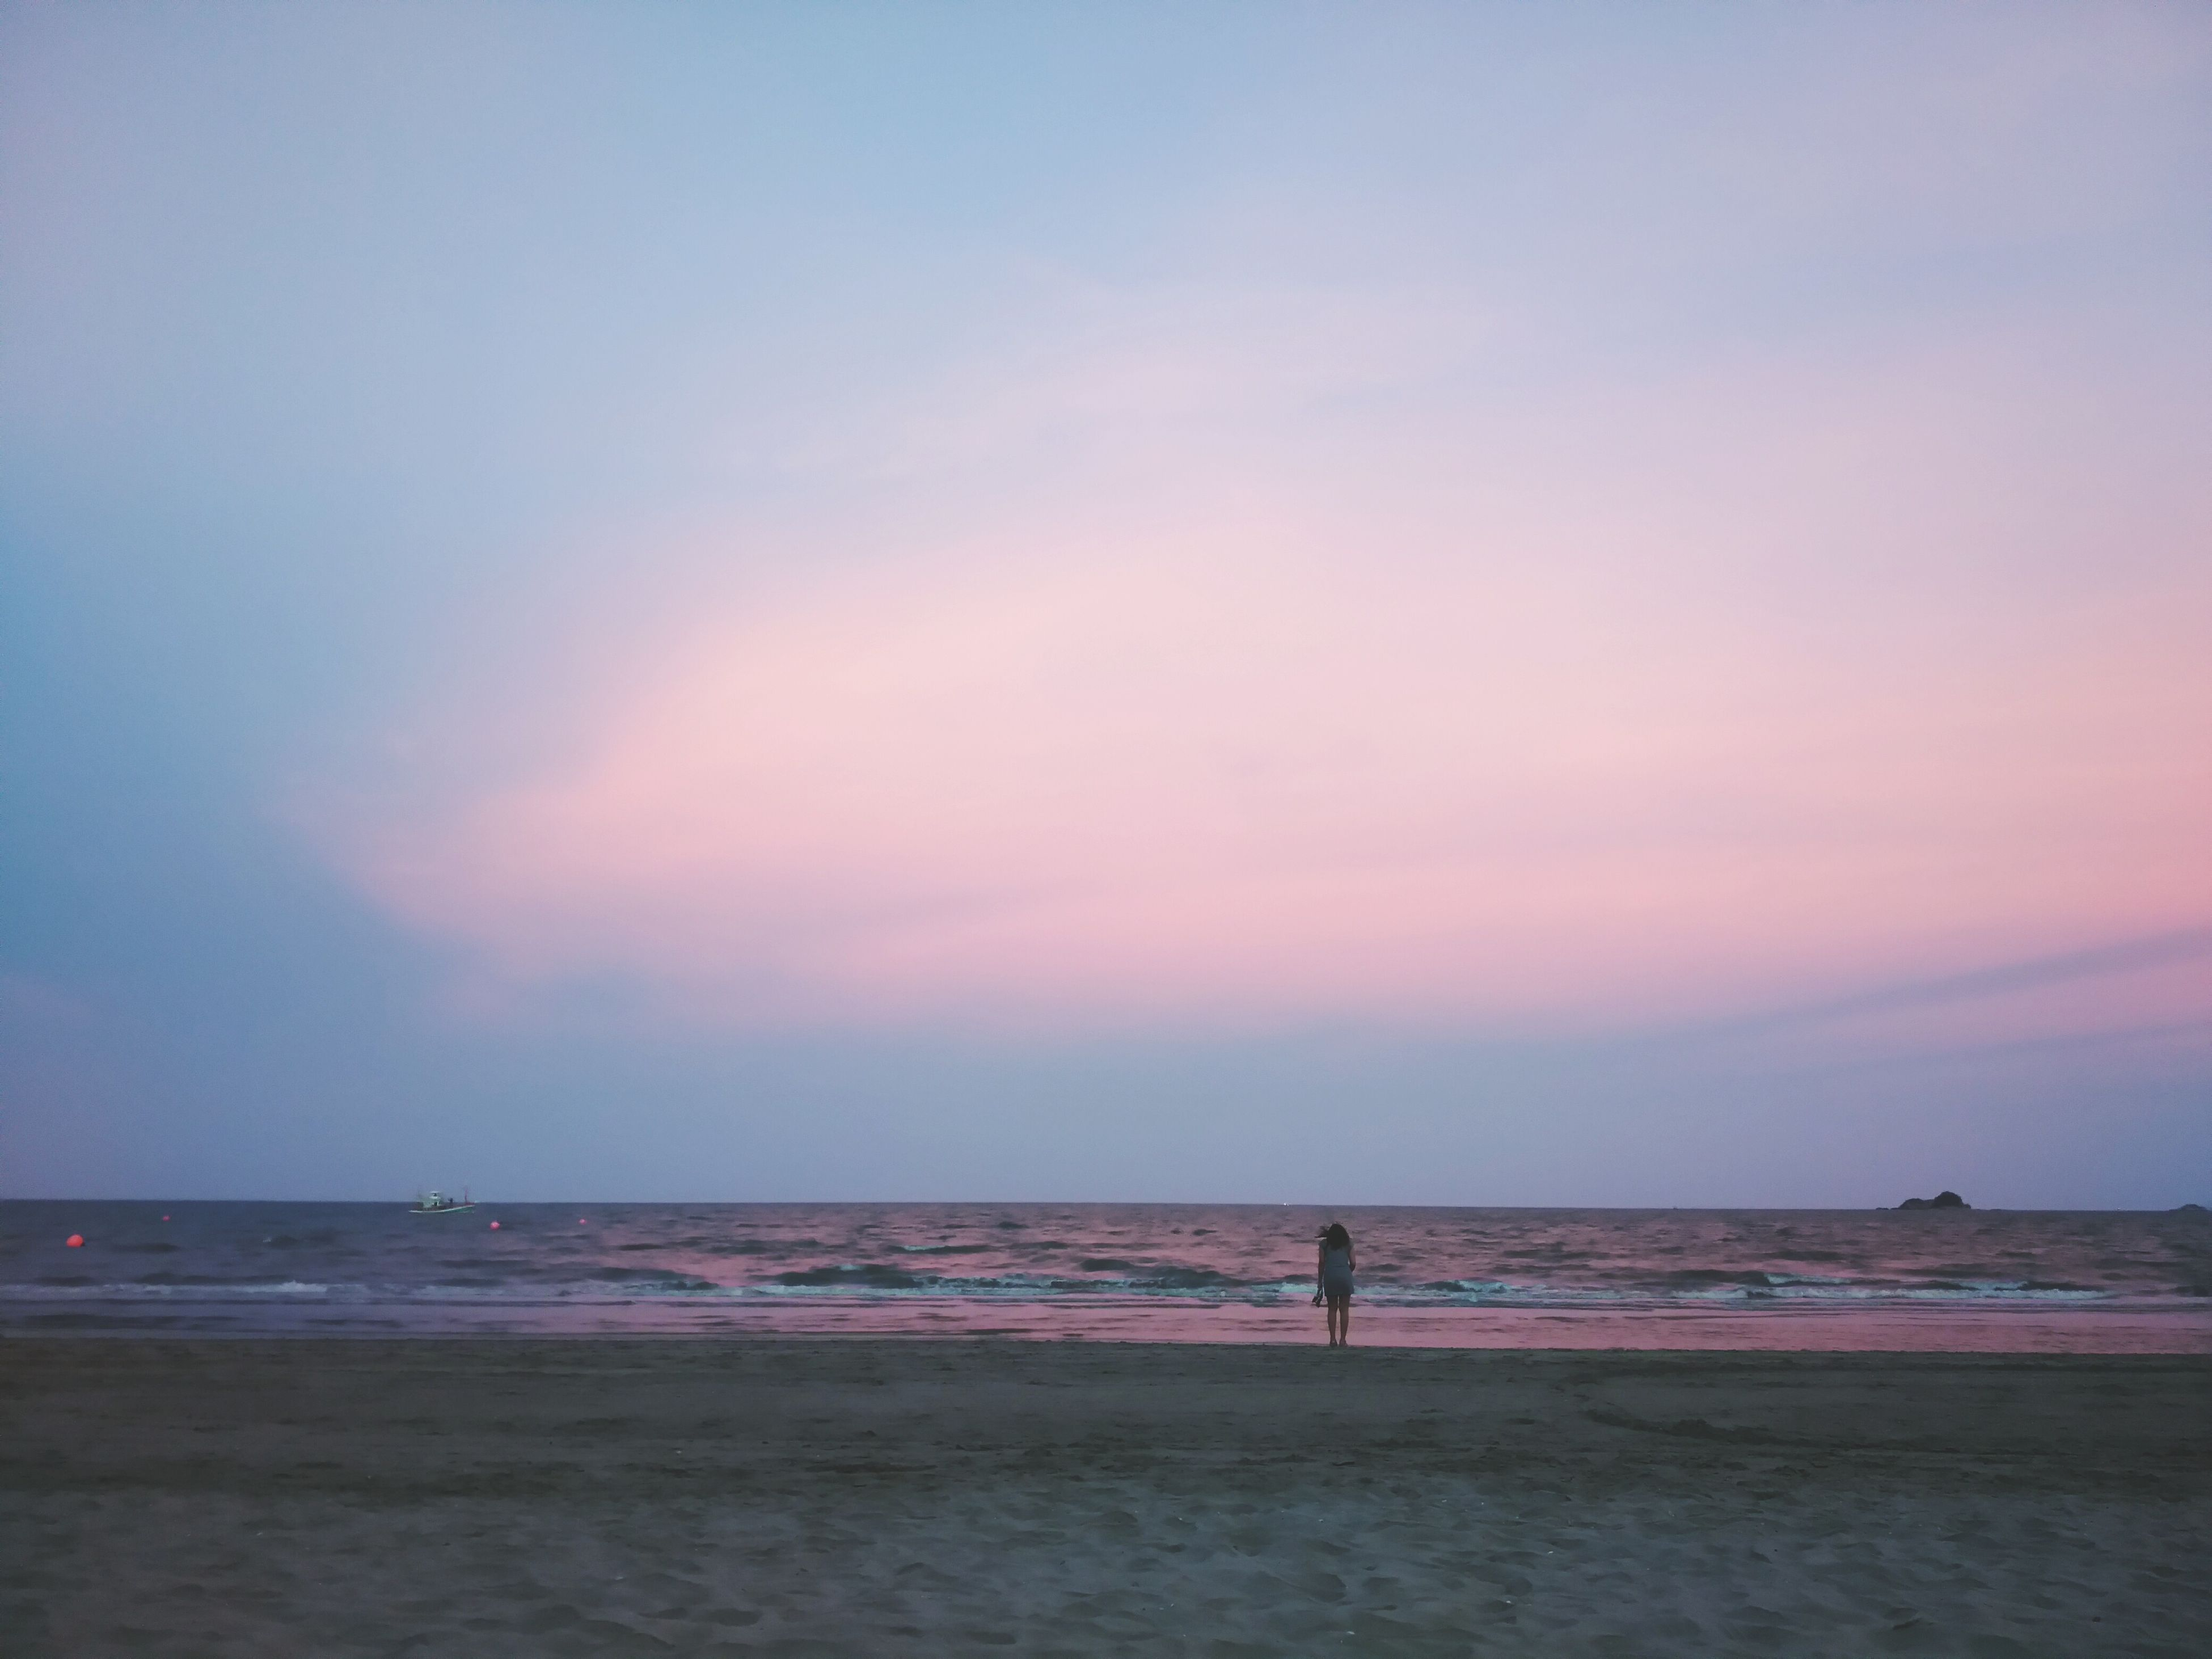 sea, horizon over water, beach, water, sky, sunset, scenics, shore, tranquil scene, beauty in nature, tranquility, leisure activity, nature, idyllic, lifestyles, cloud - sky, silhouette, sand, vacations